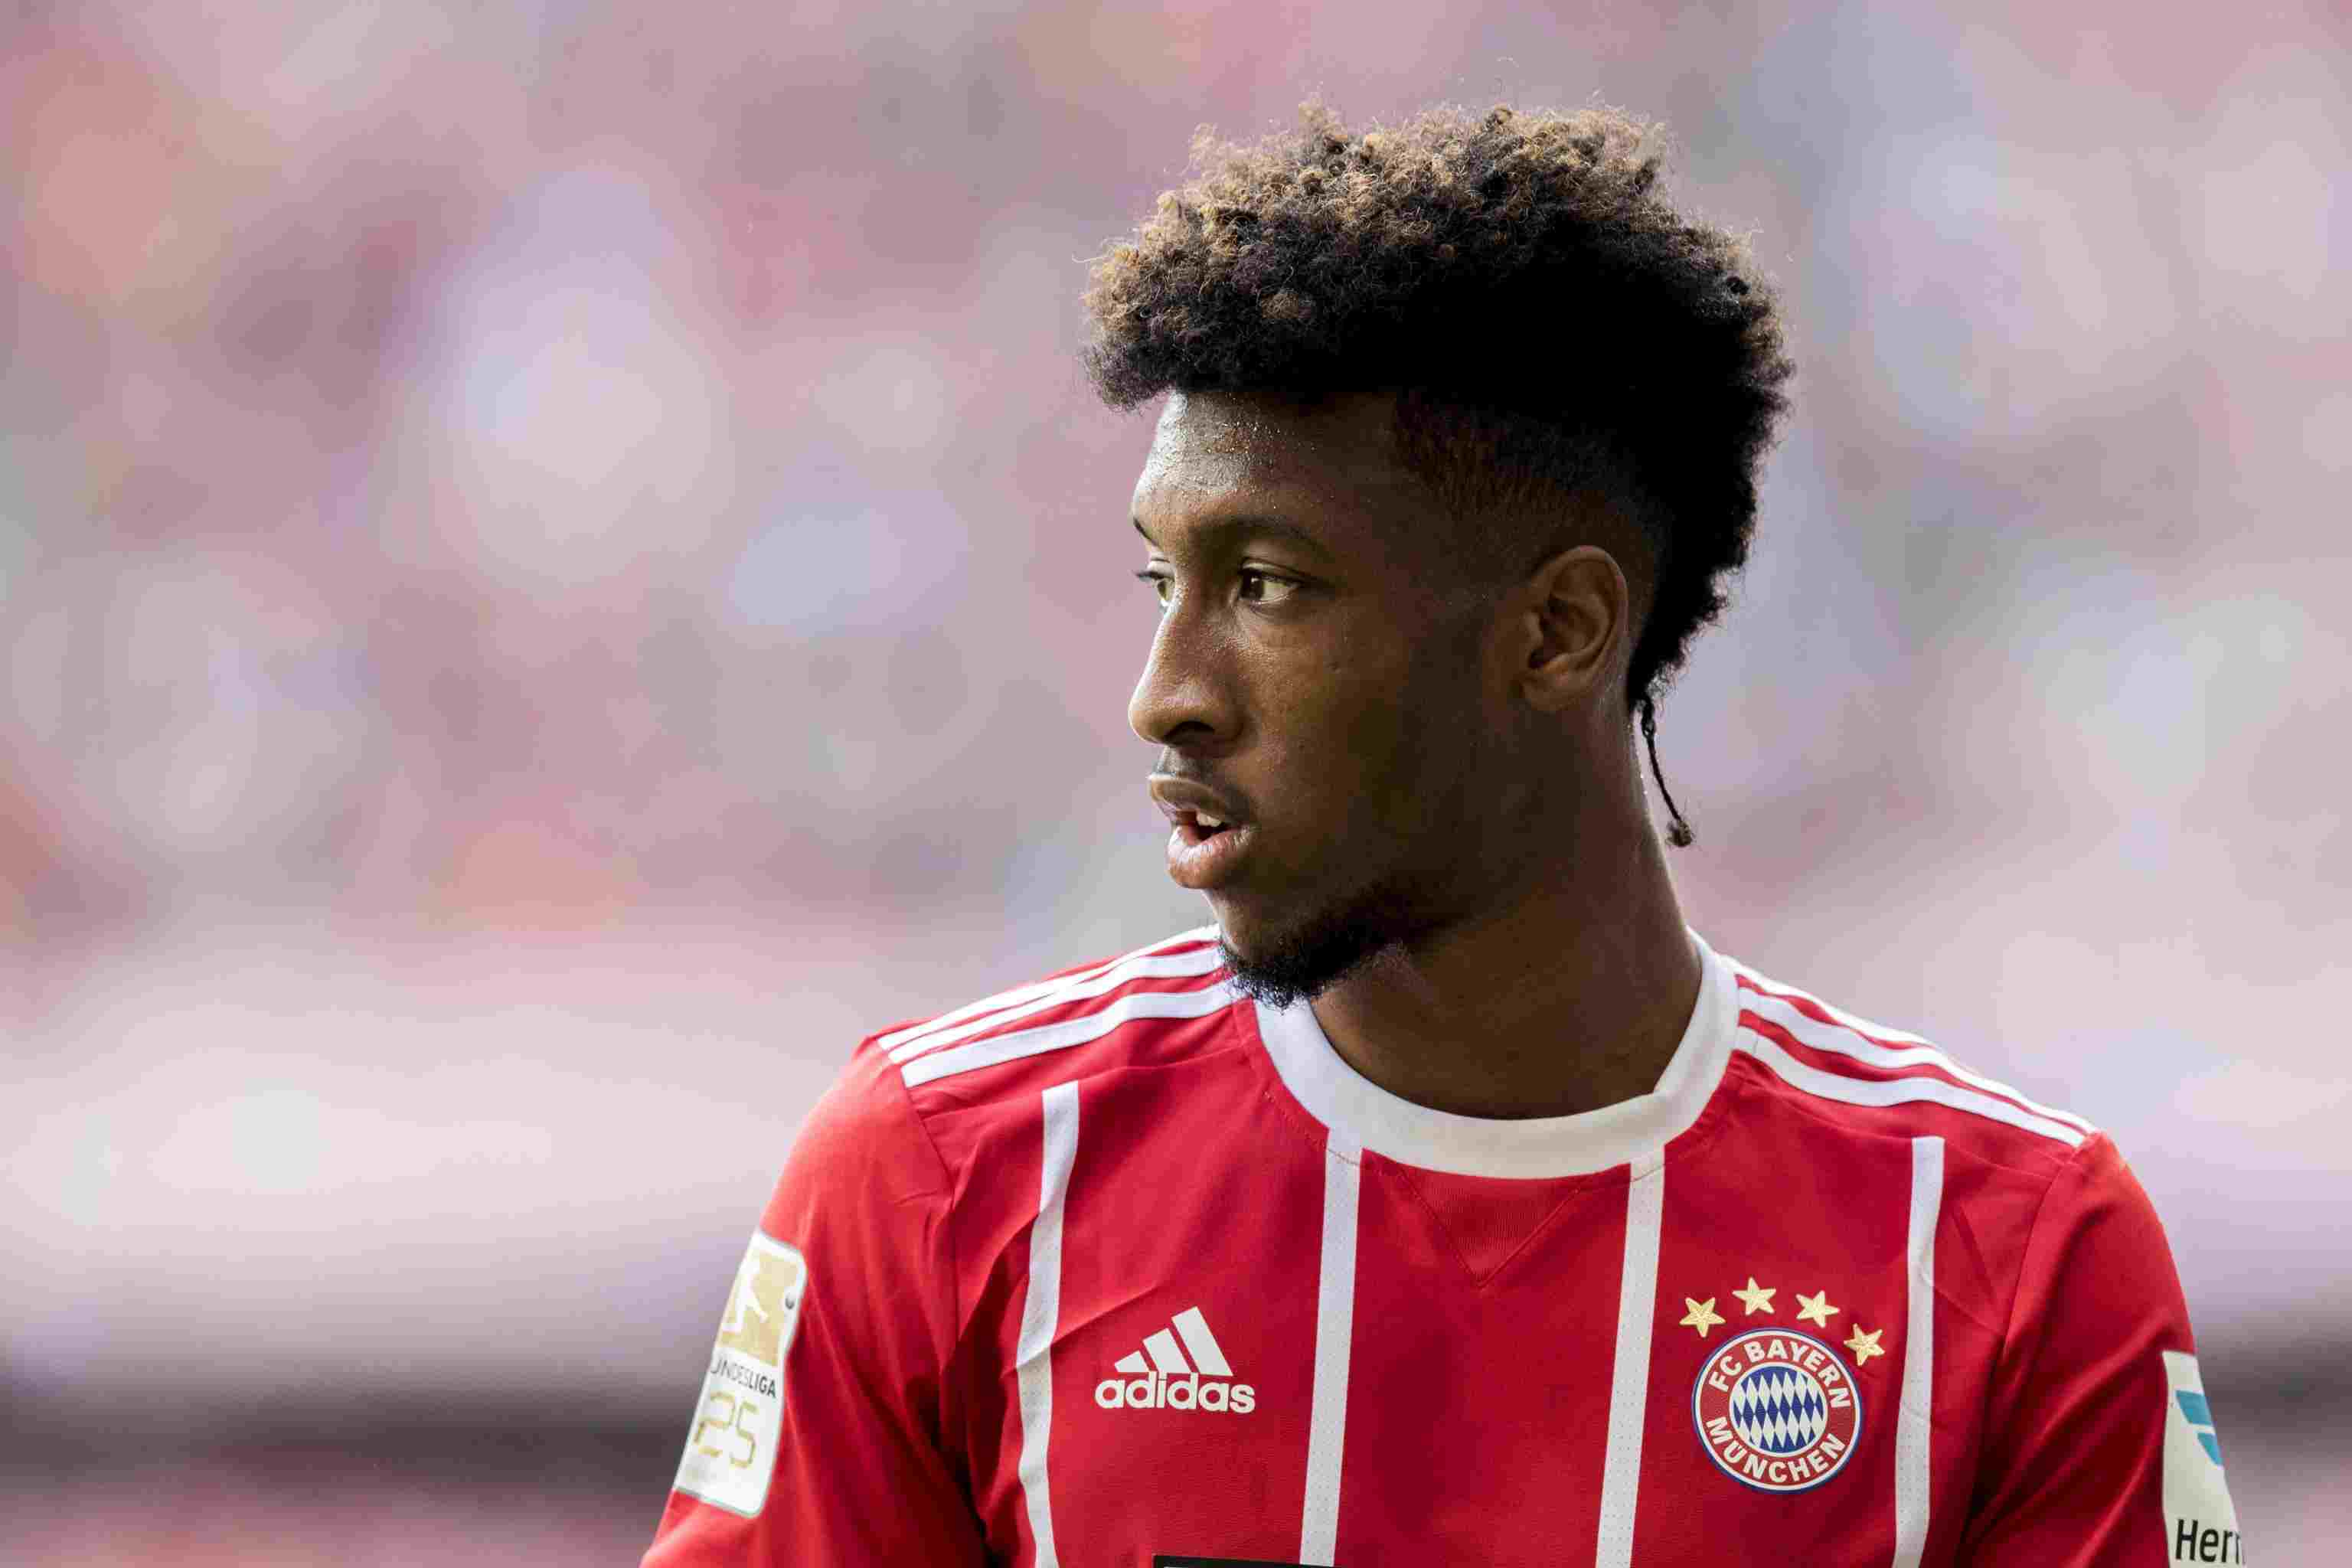 Man Utd in talks to sign Bayern Munich winger Kingsley Coman